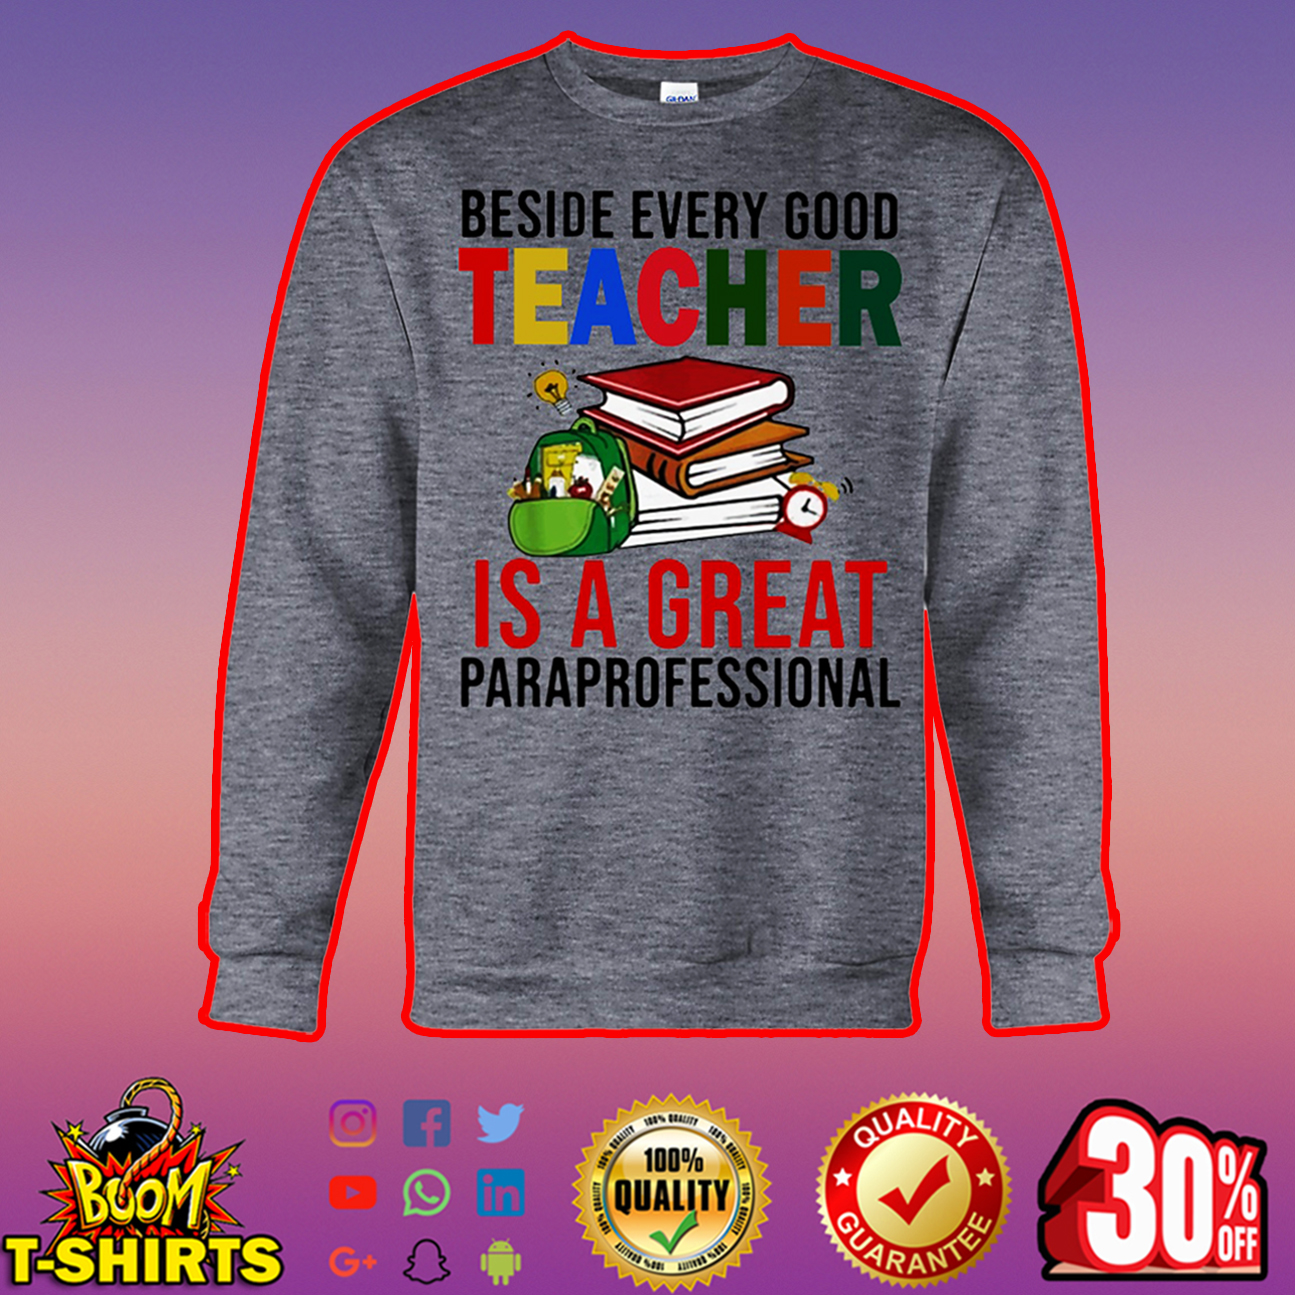 Beside every good teacher is a great paraprofessional sweatshirt